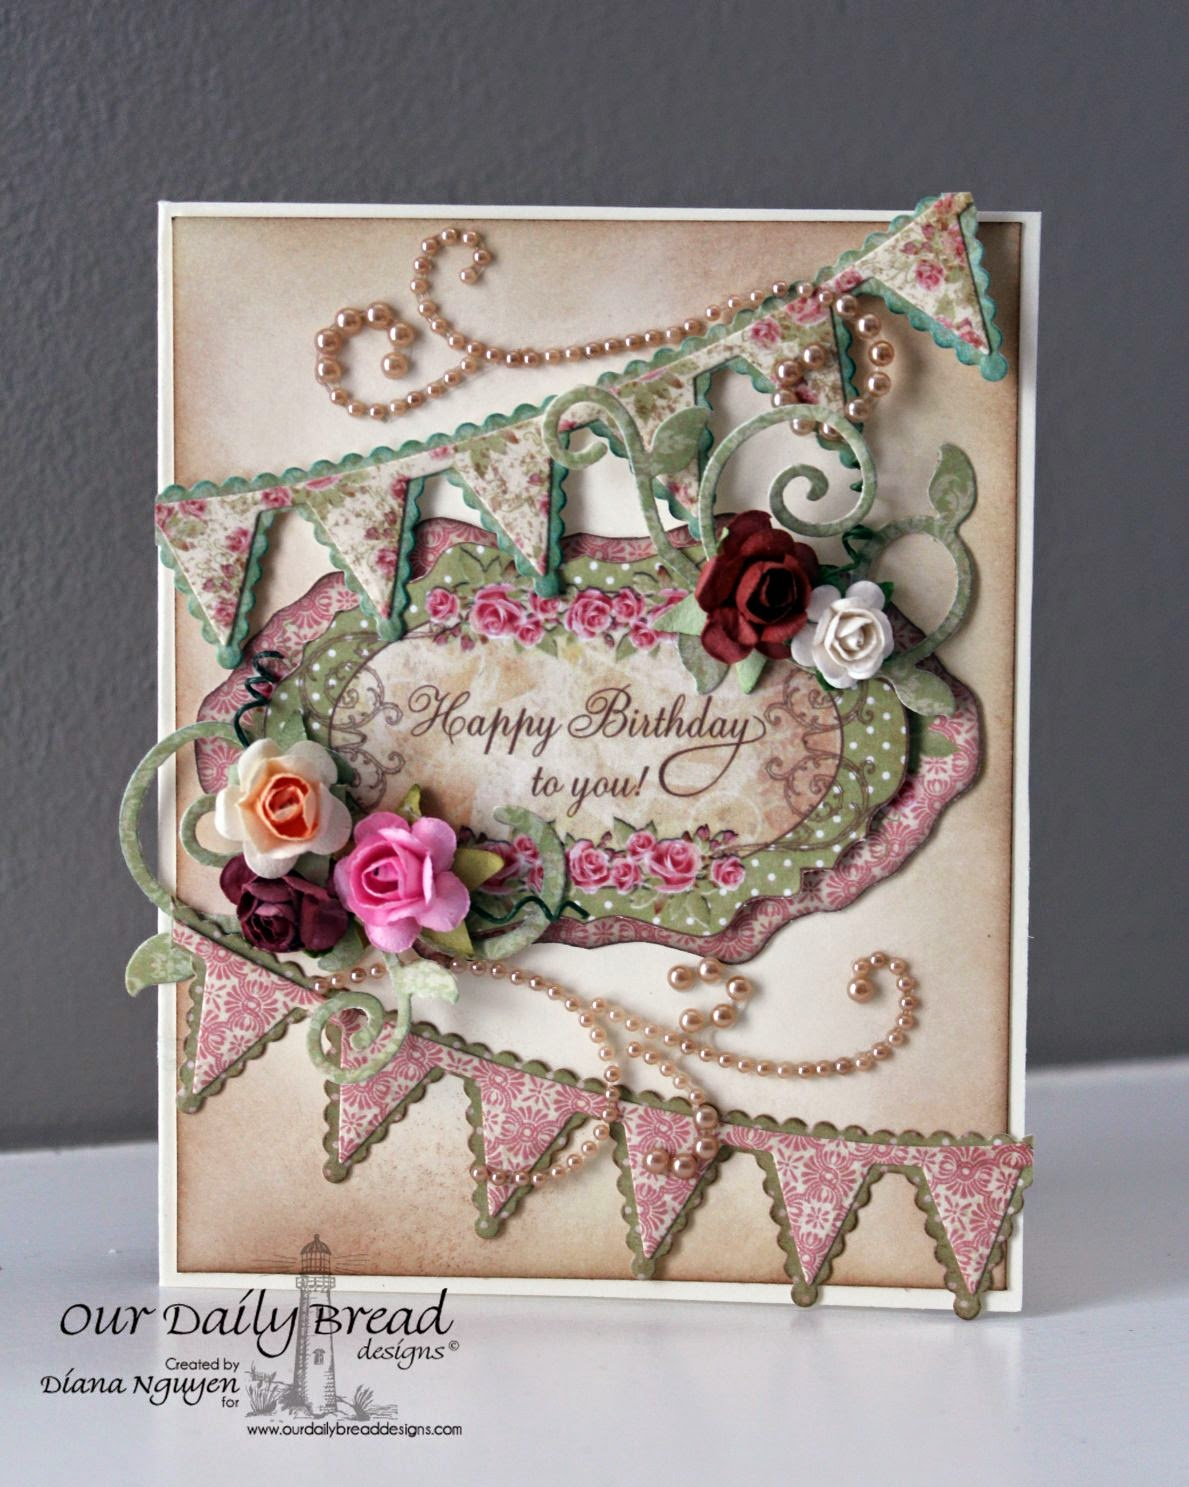 Our Daily bread designs, pennant row, birthday card, blushing rose paper